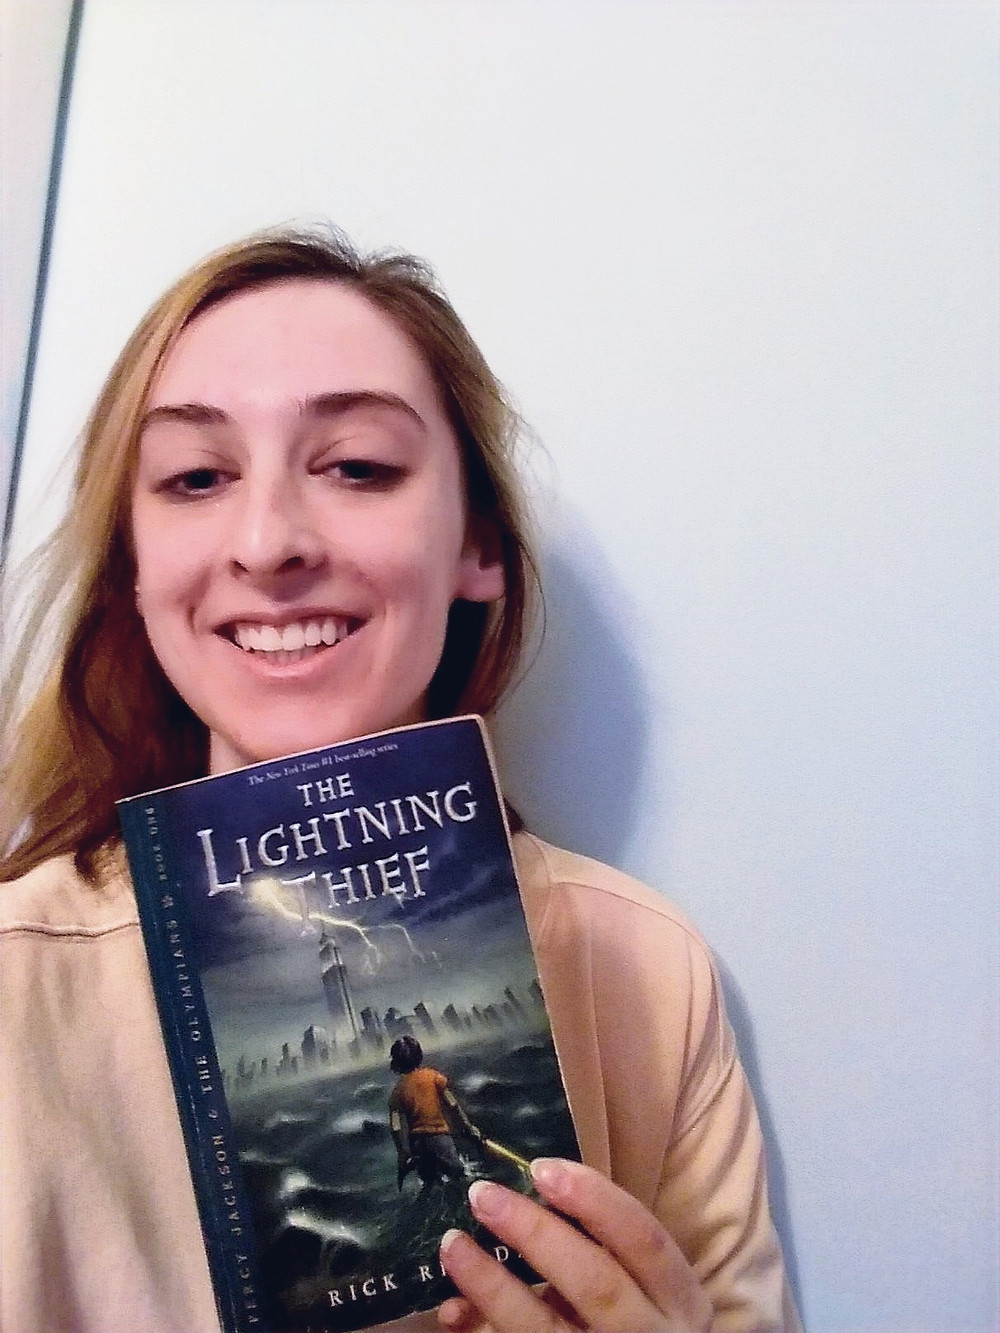 A photo of me holding my copy of the Lightning Thief.